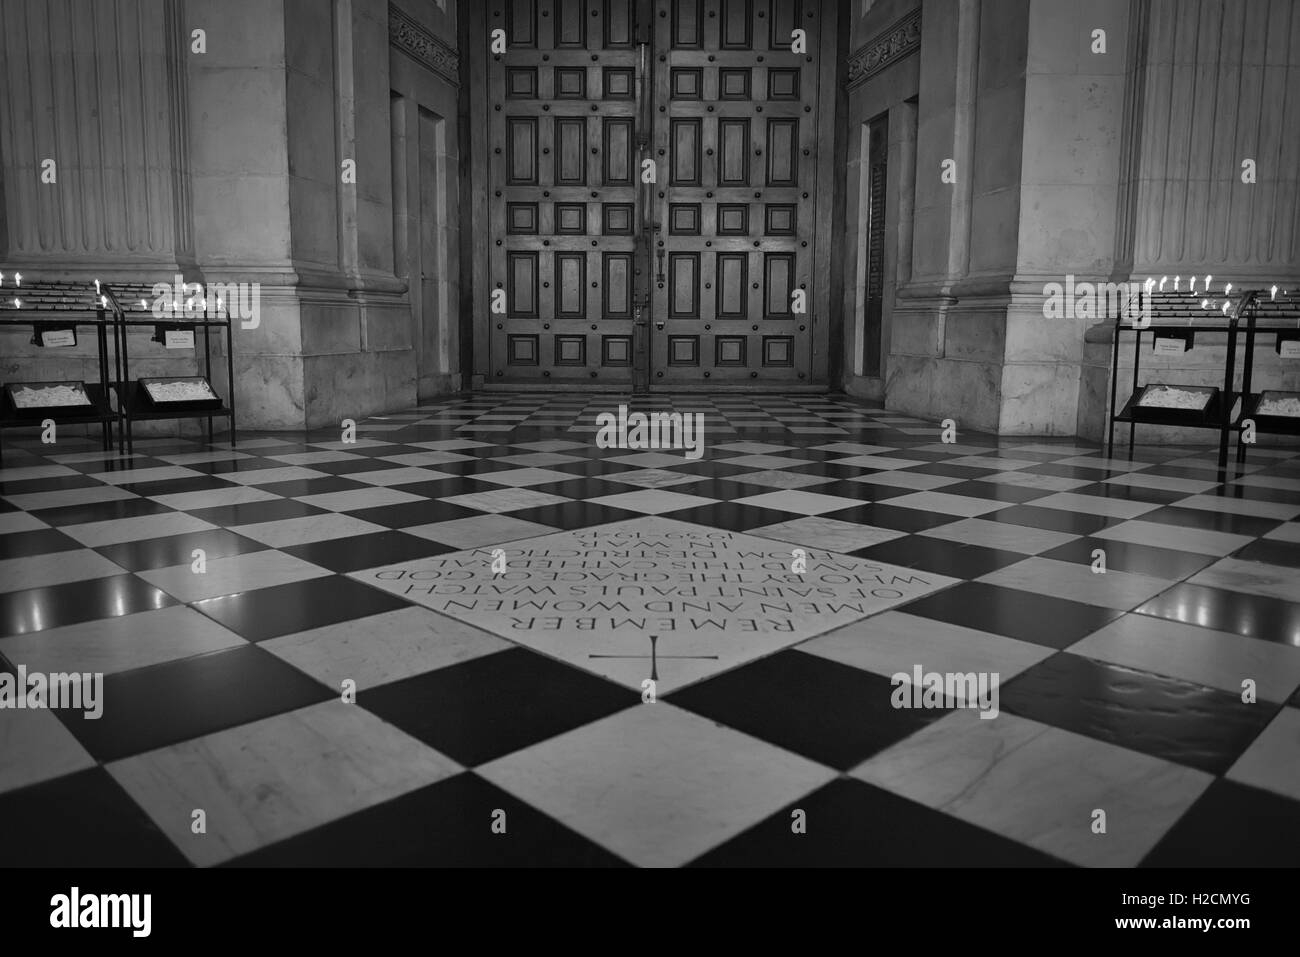 https www alamy com stock photo wooden doors of st pauls cathedral and square floor tiles in london 121981764 html